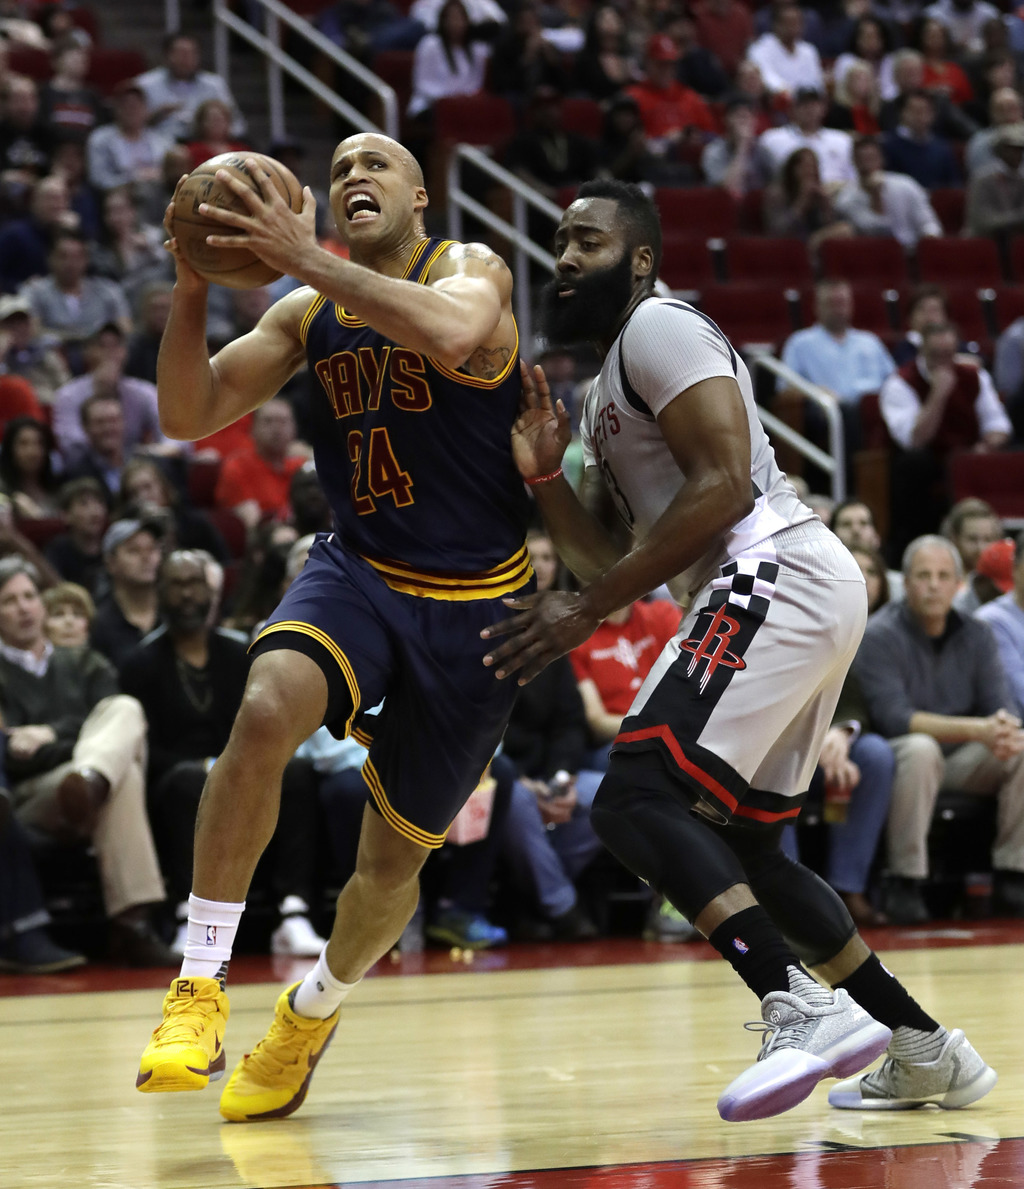 Cleveland Cavaliers' Richard Jefferson (24) drives toward the basket as Houston Rockets' James Harden (13) defends during the first qua...